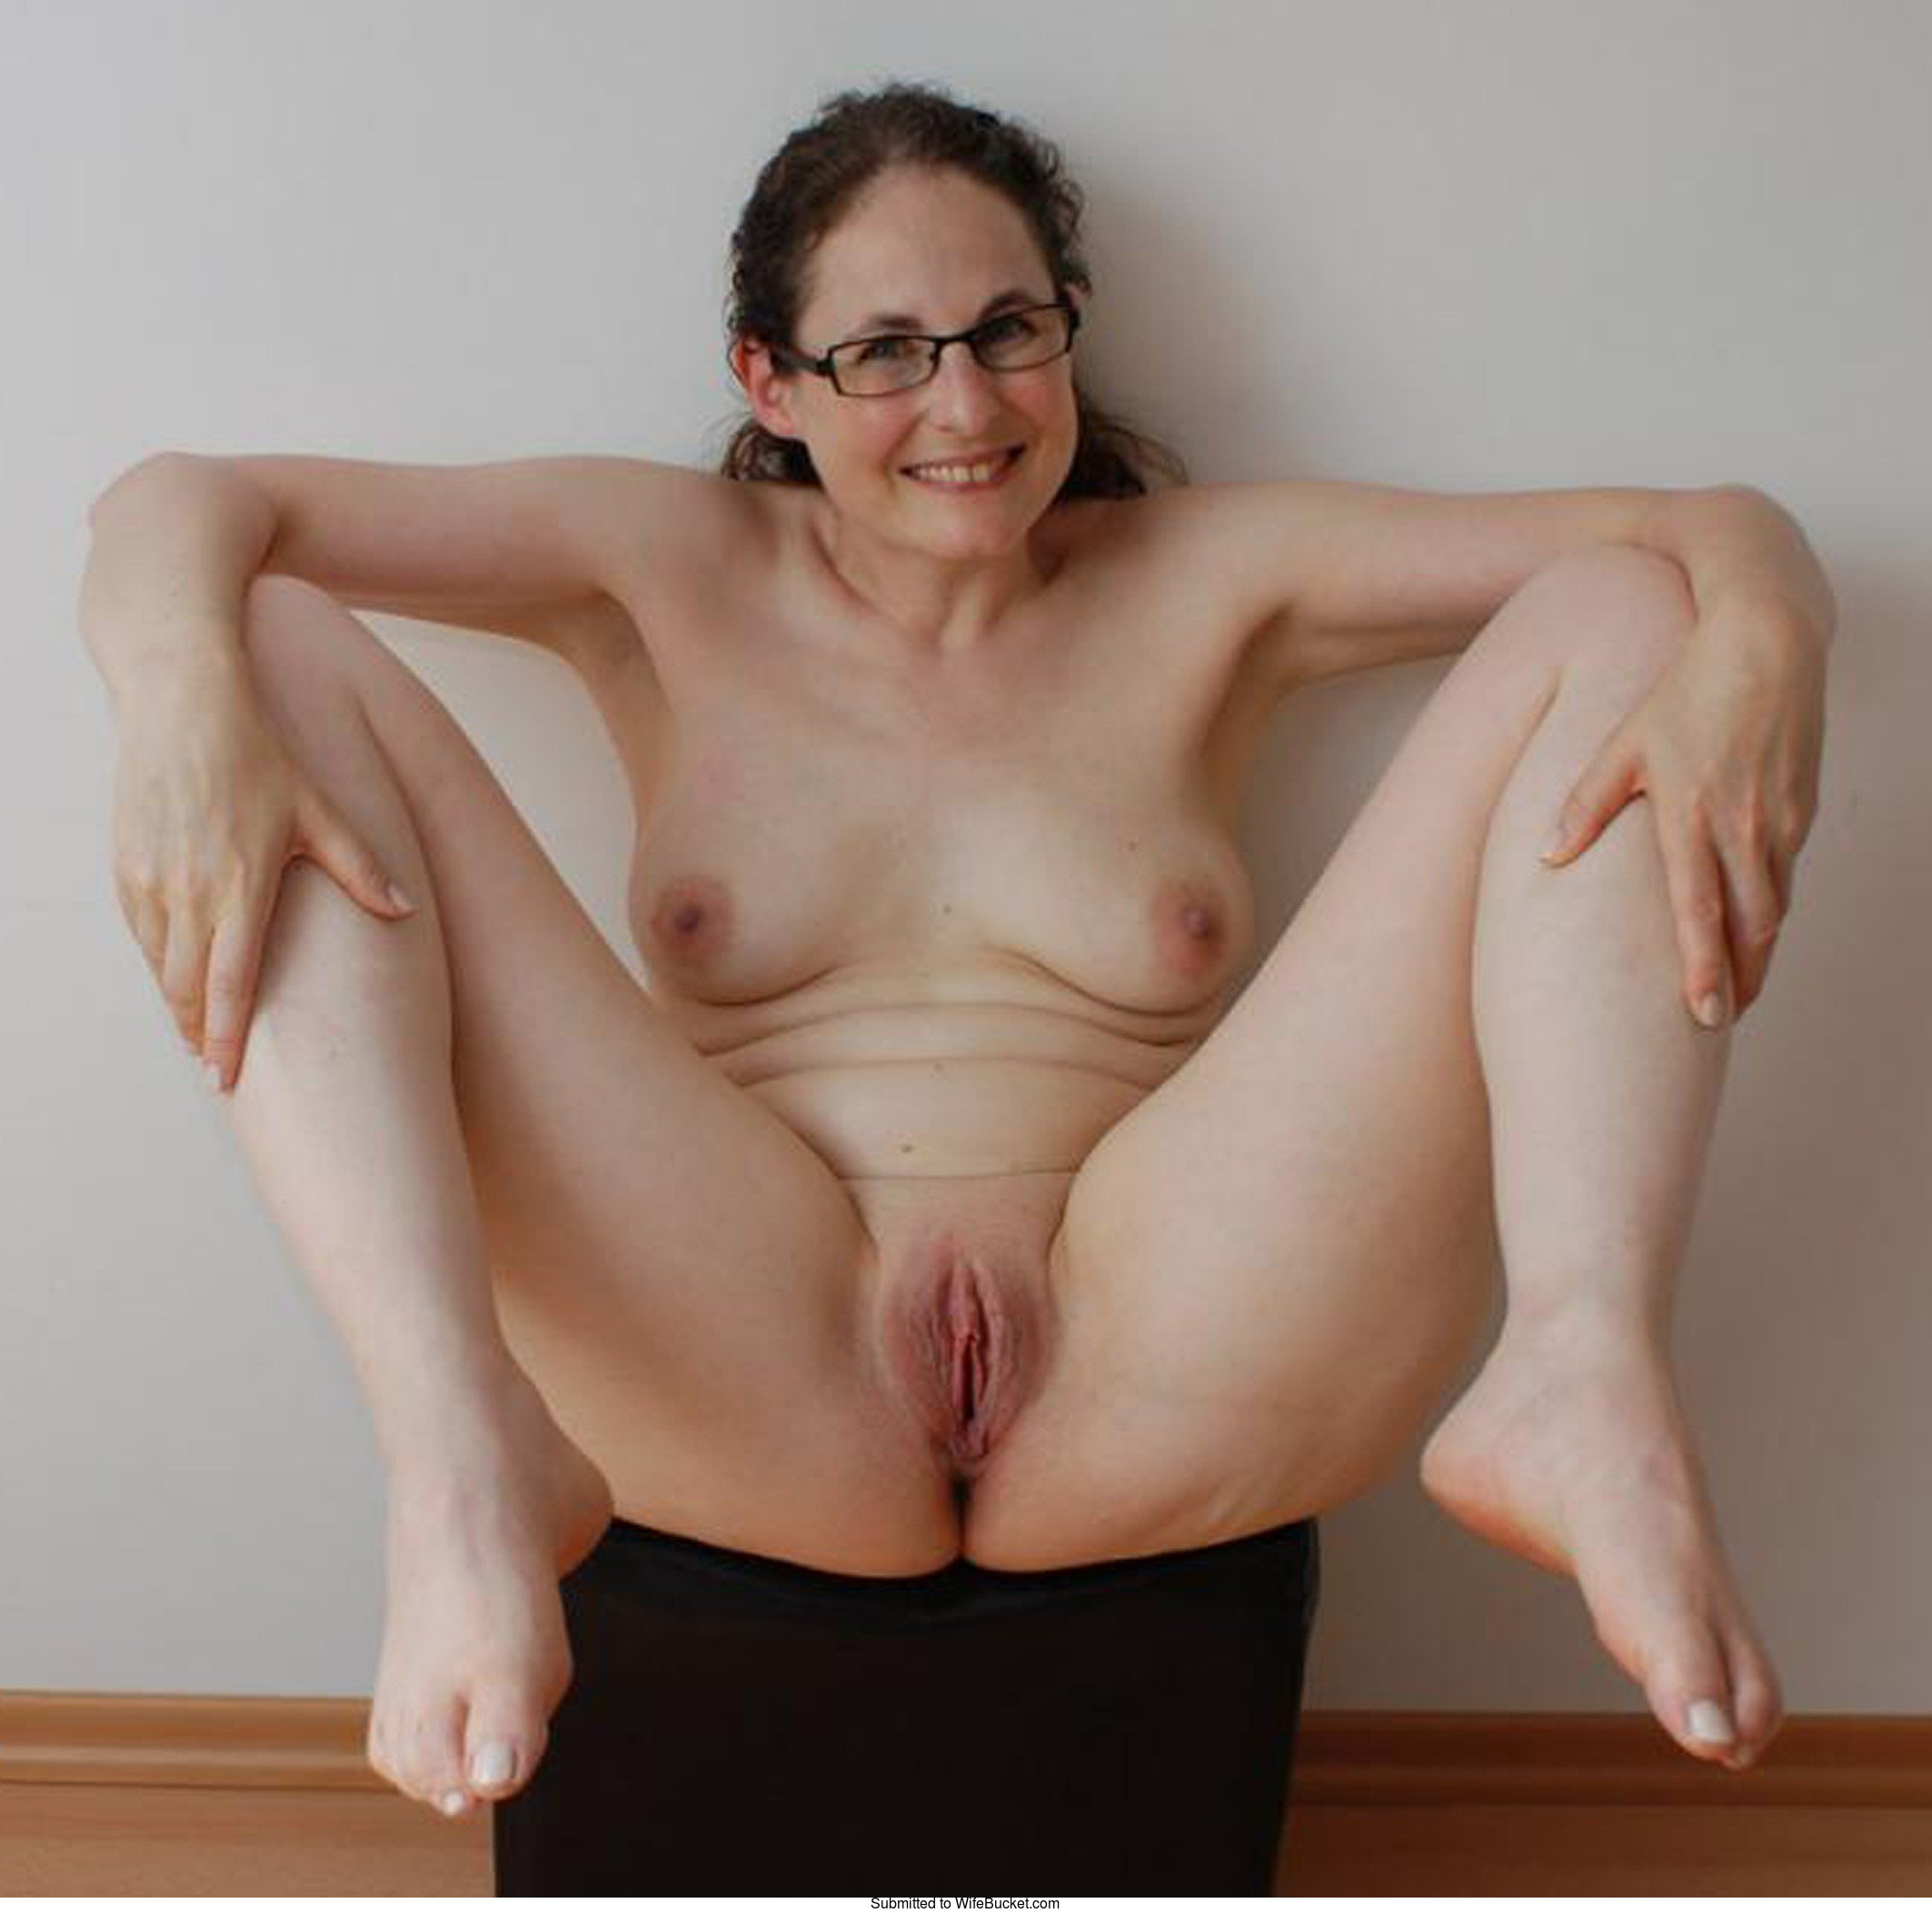 nerd average wife naked